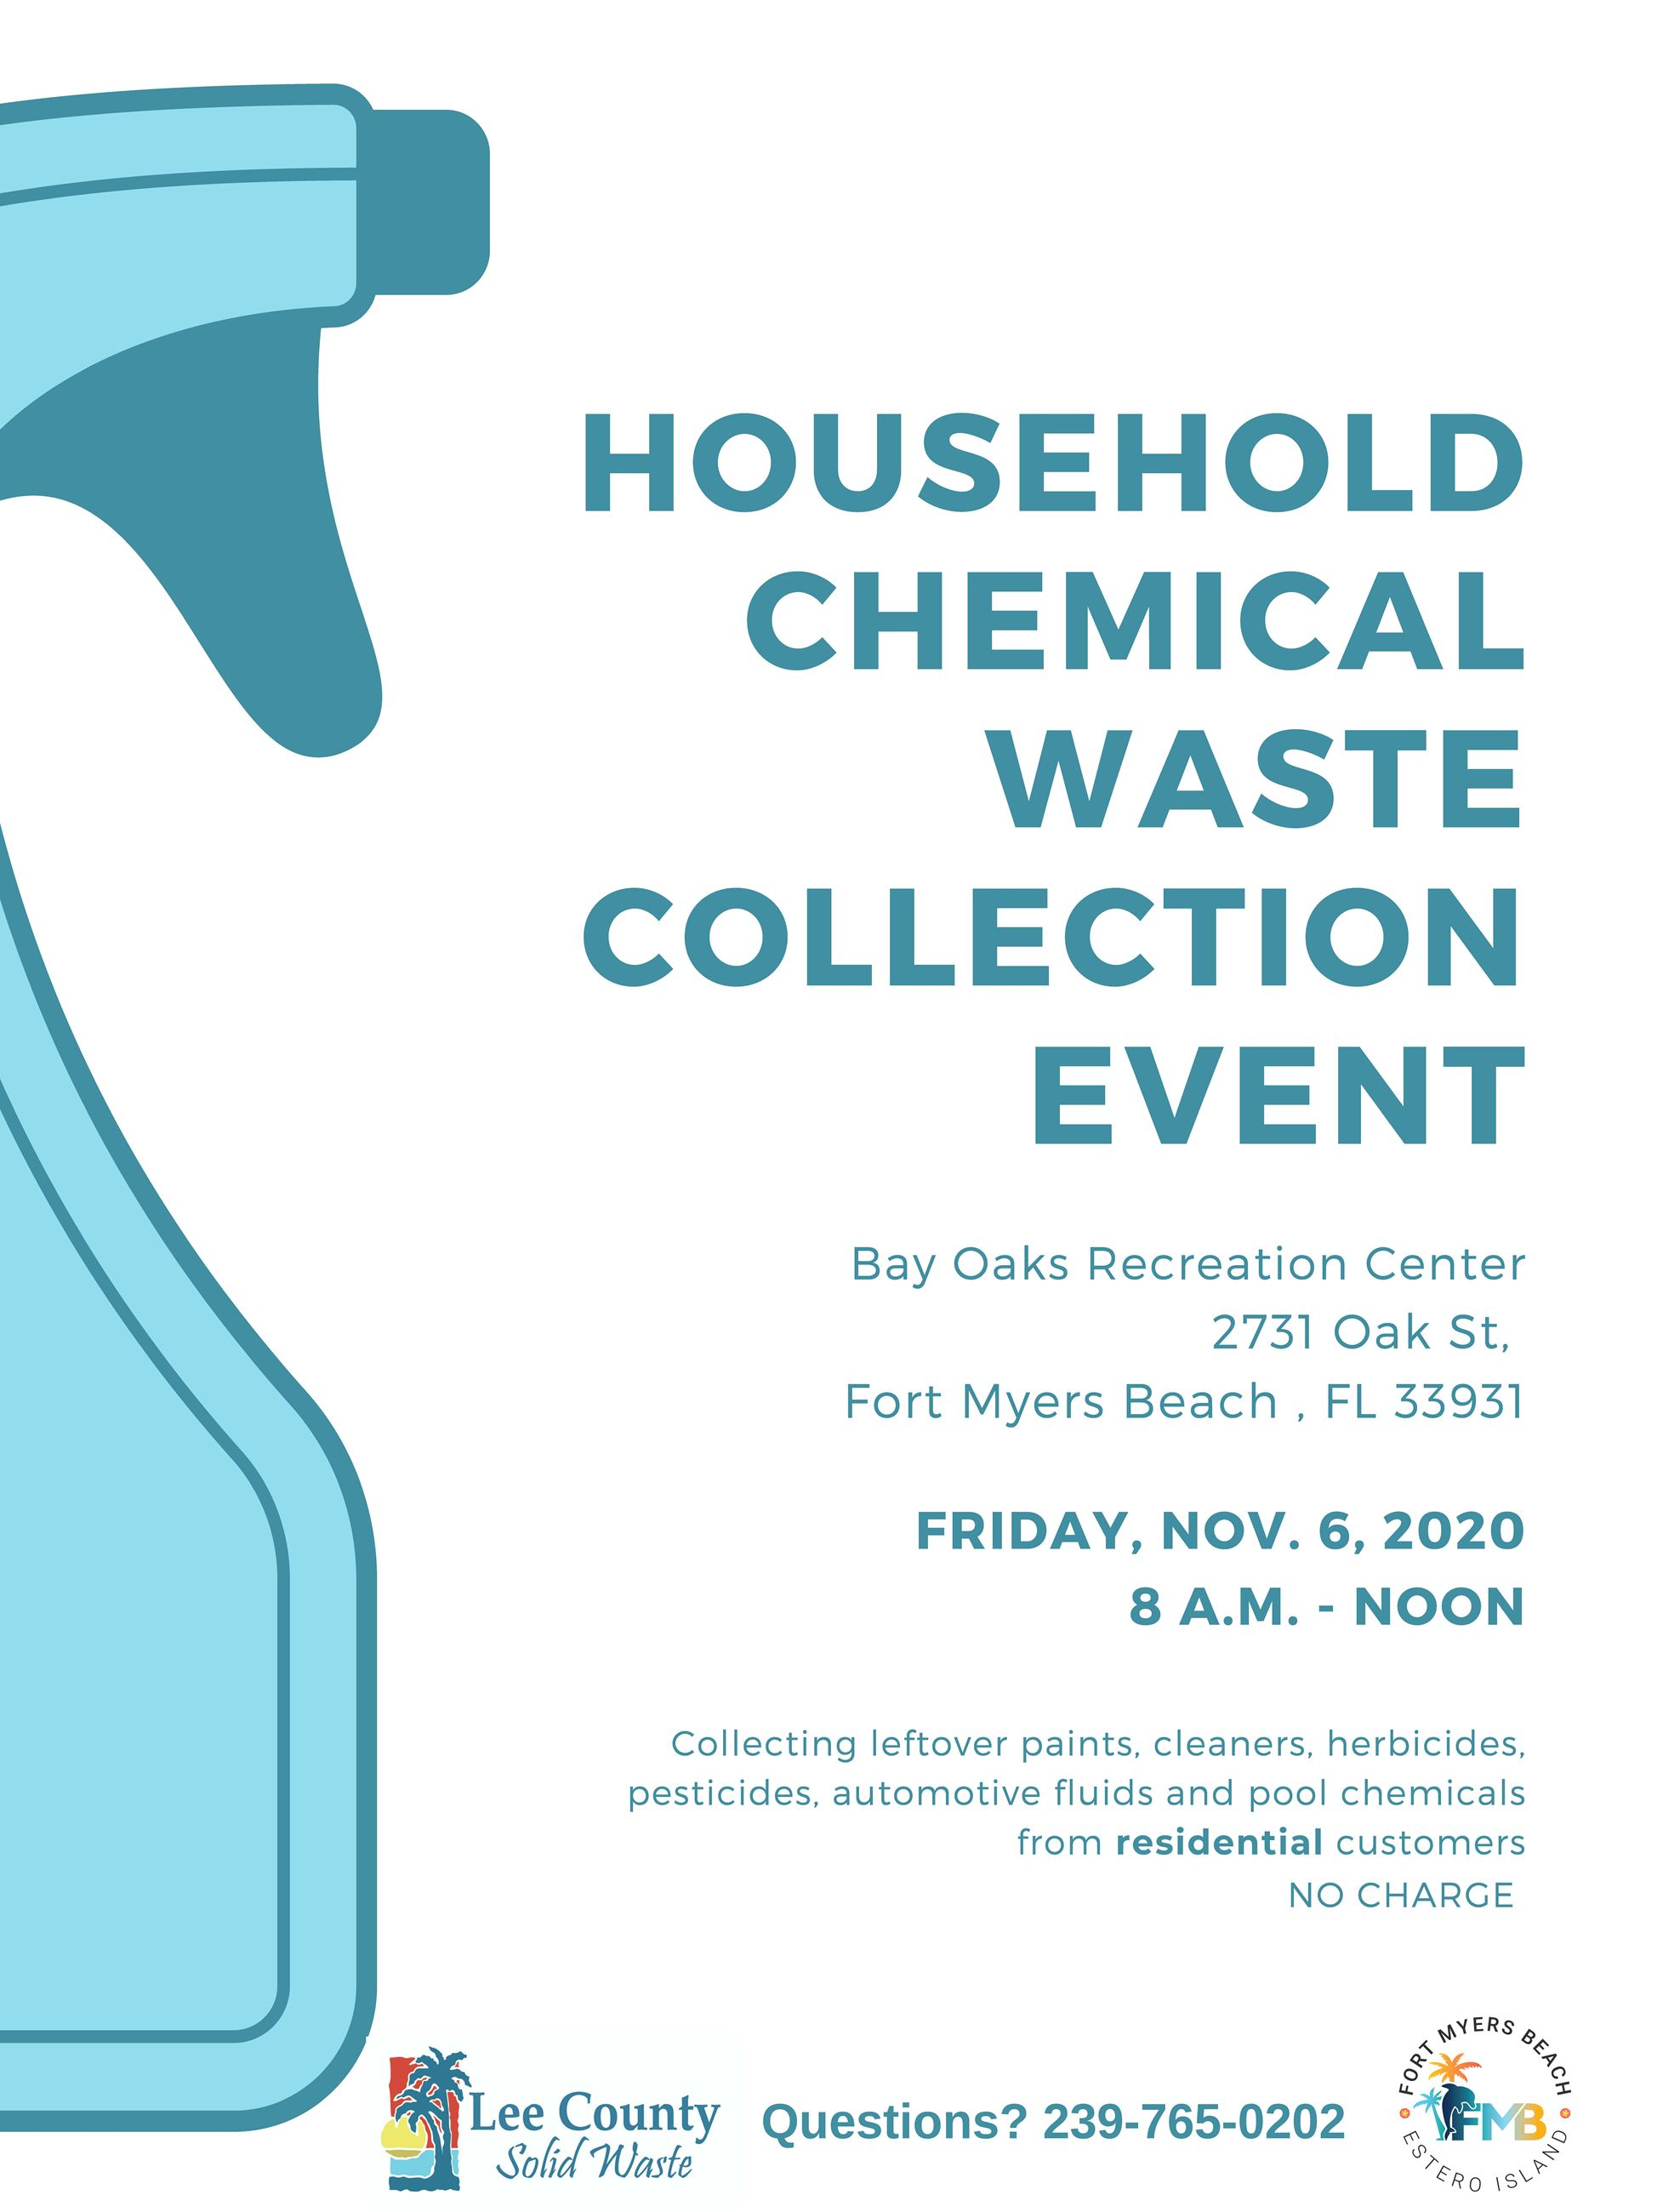 FMB HCW COLLECTION EVENT 1162020